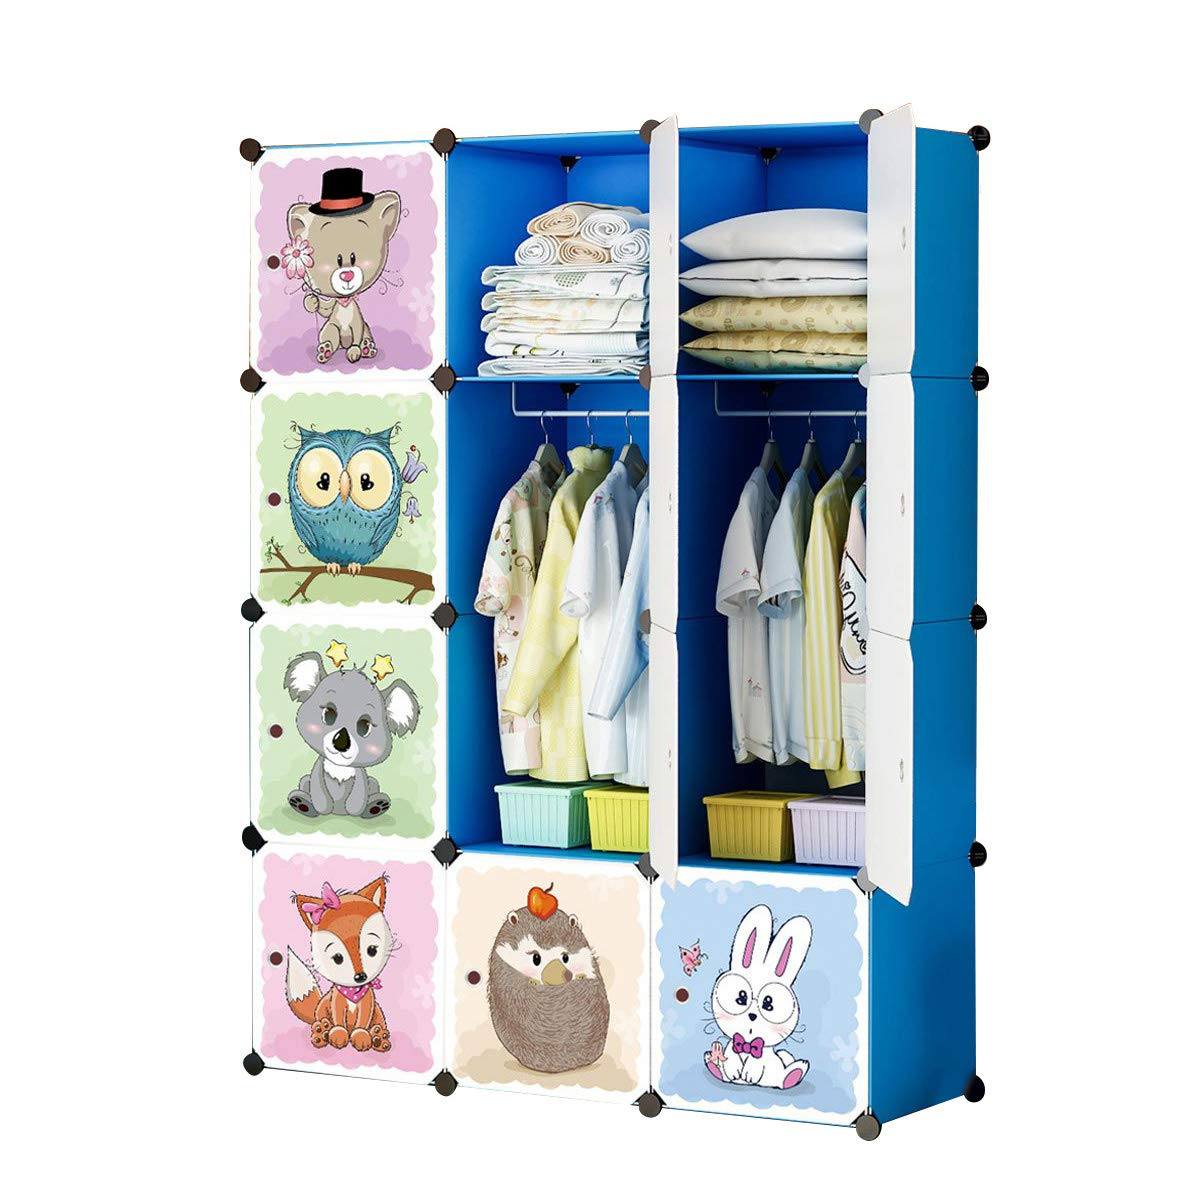 KOUSI Kids Dresser Kids Closet Portable Closet Wardrobe Children Bedroom Armoire Clothes Hanging Storage Rack Cube Organizer,Cute Cartoon,Safety & Large & Sturdy, Blue, 6 Cubes & 1 Hanging Clothes